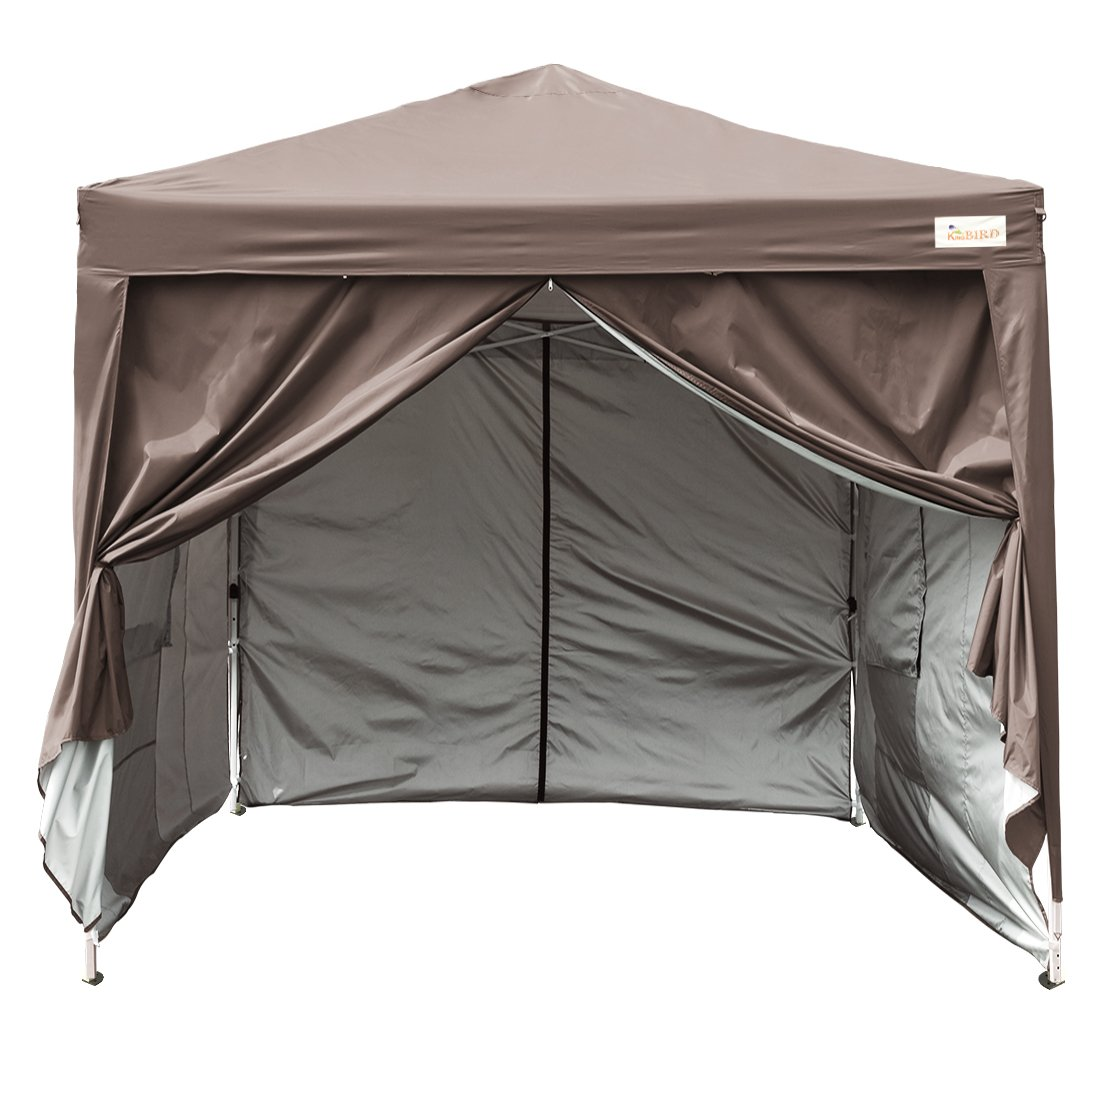 Kingbird 10x10 ft Easy Pop up Canopy Waterproof Party Tent 4 Removable Walls Mesh Windows with Carry Bag-7 Colors (coffee) by Kingbird